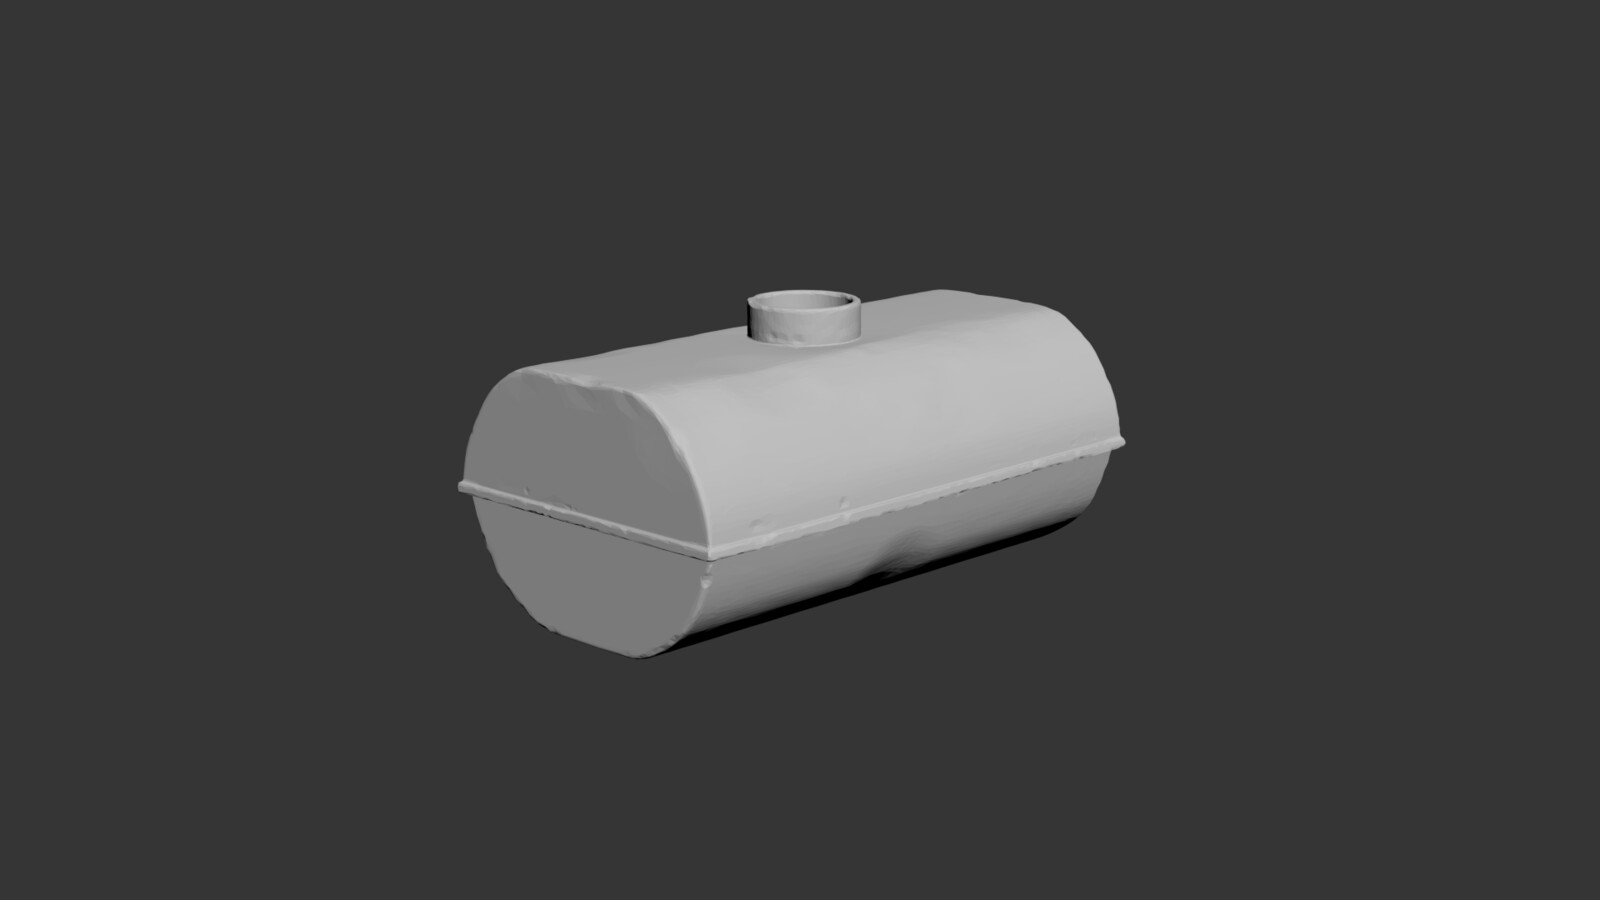 Water tank prop. Modeled in 3ds and damaged in zbrush.